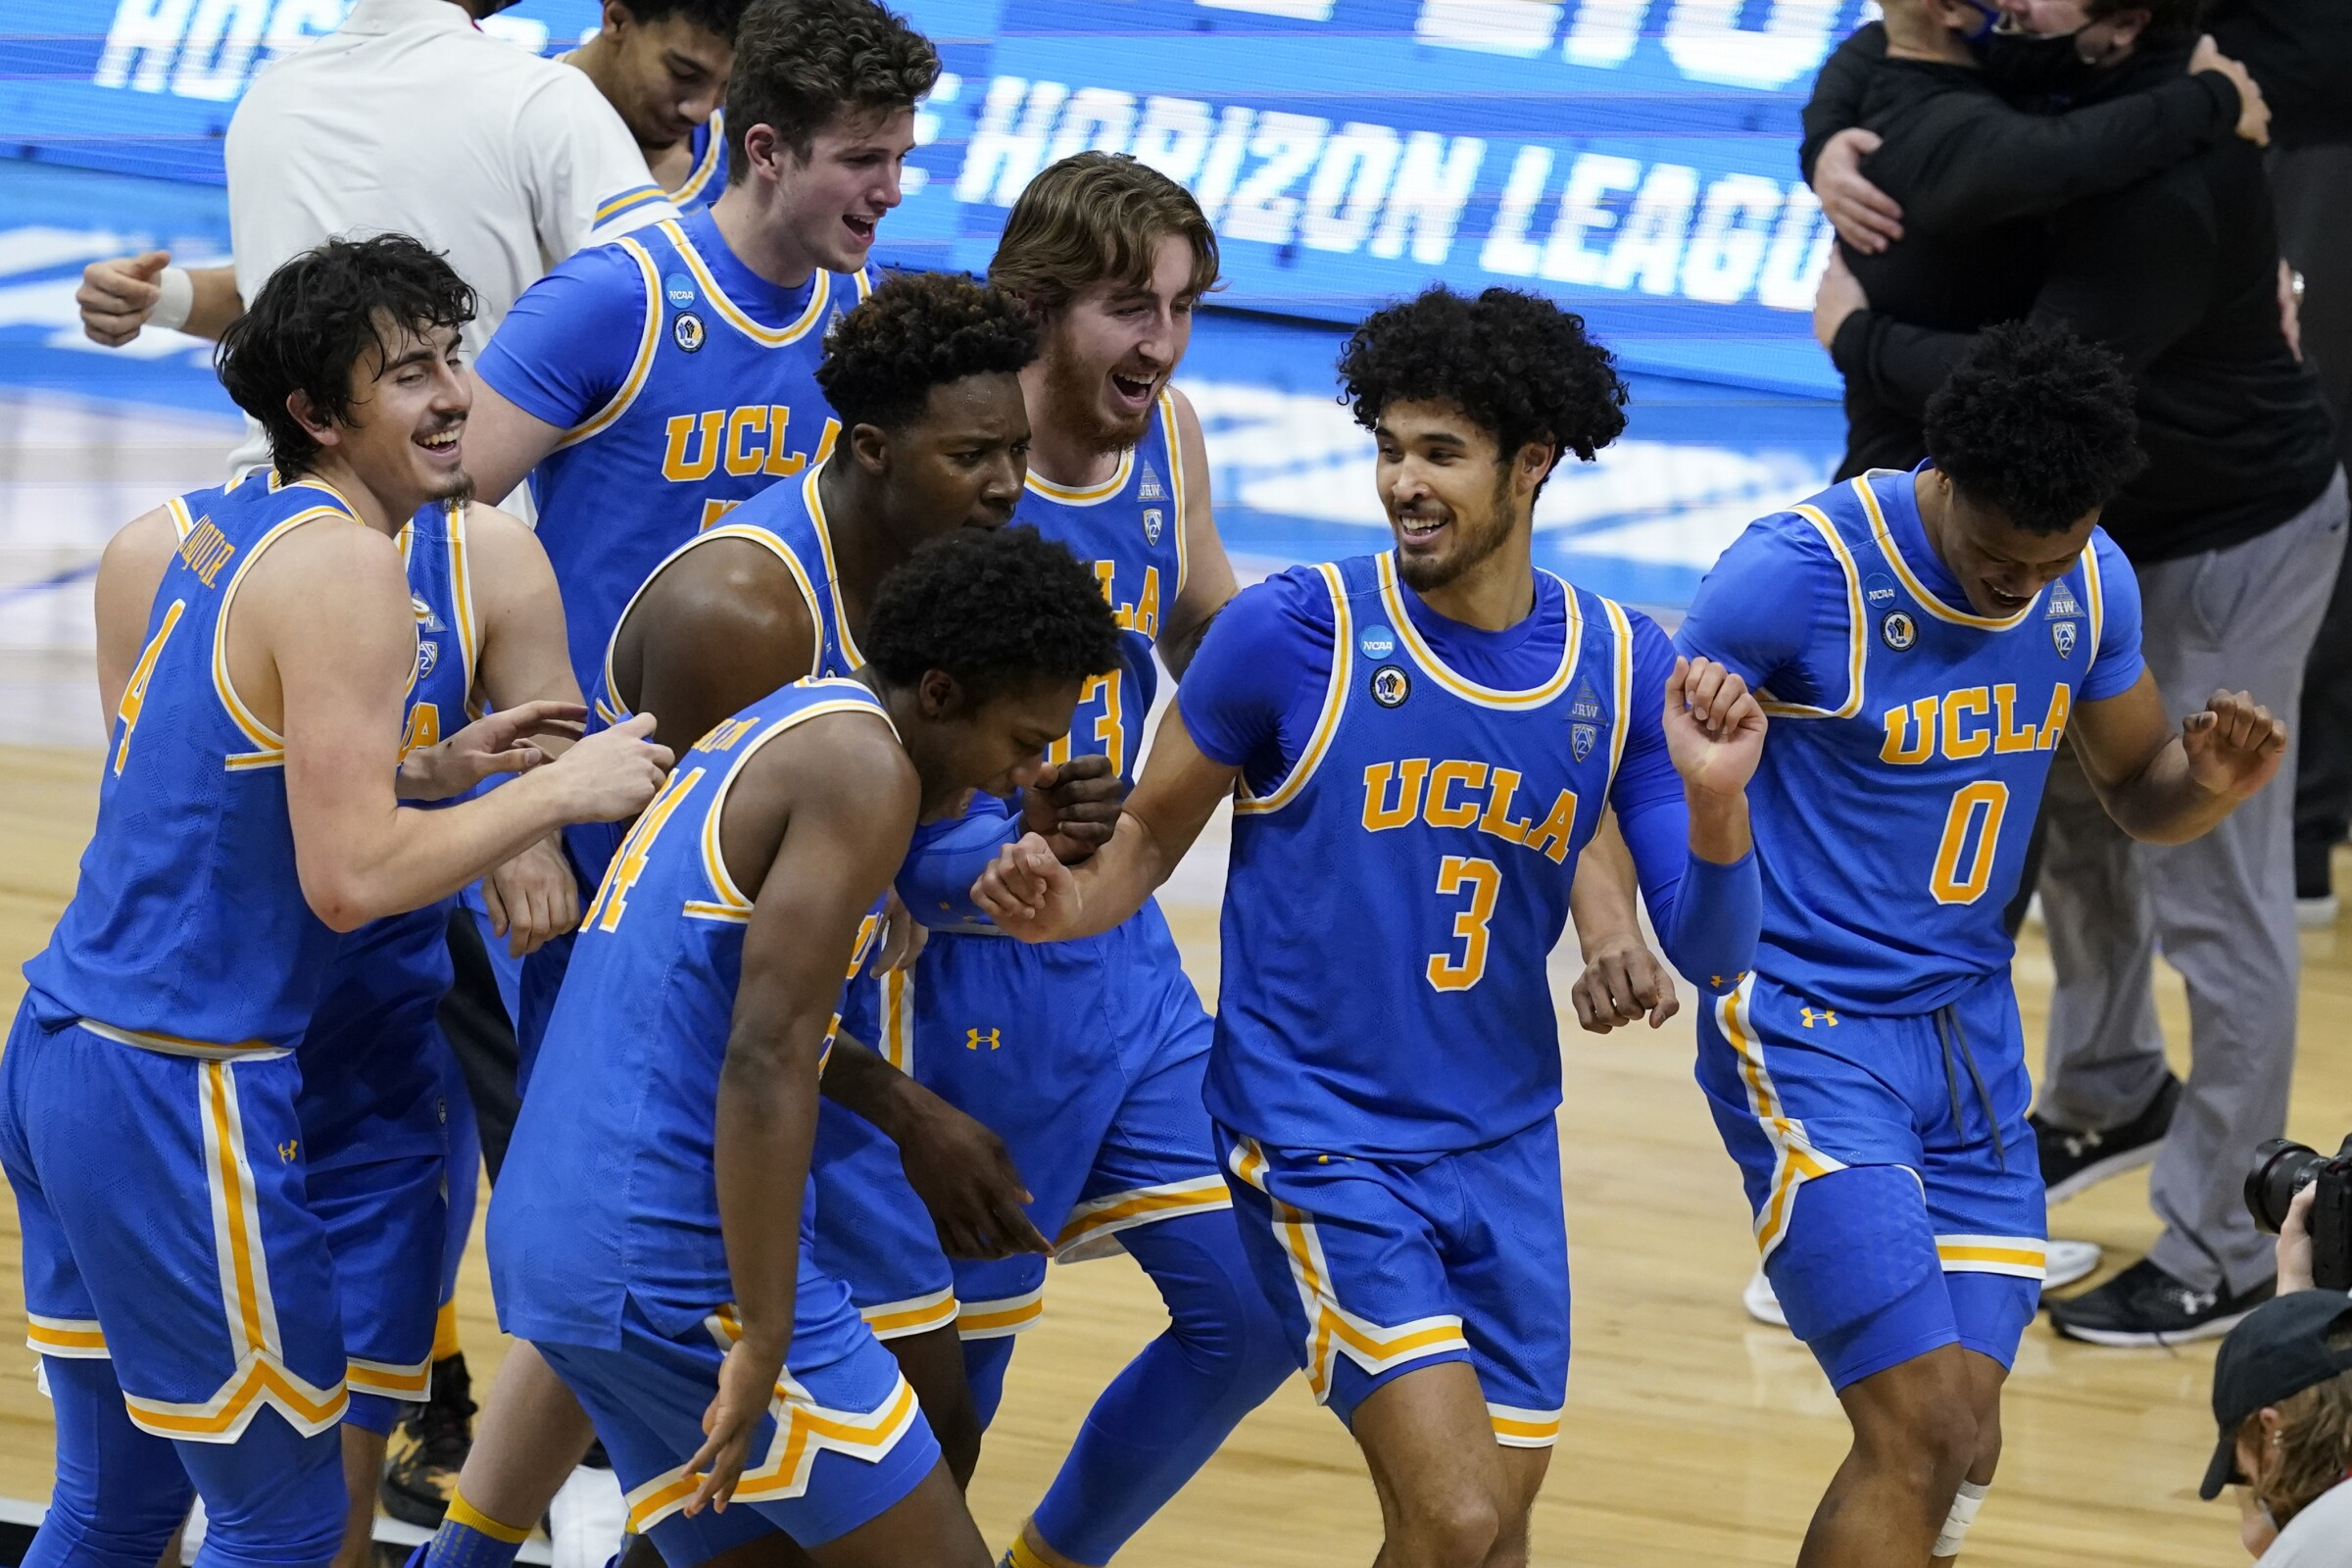 UCLA players celebrate after an Elite Eight game against Michigan in the NCAA men's college basketball tournament.